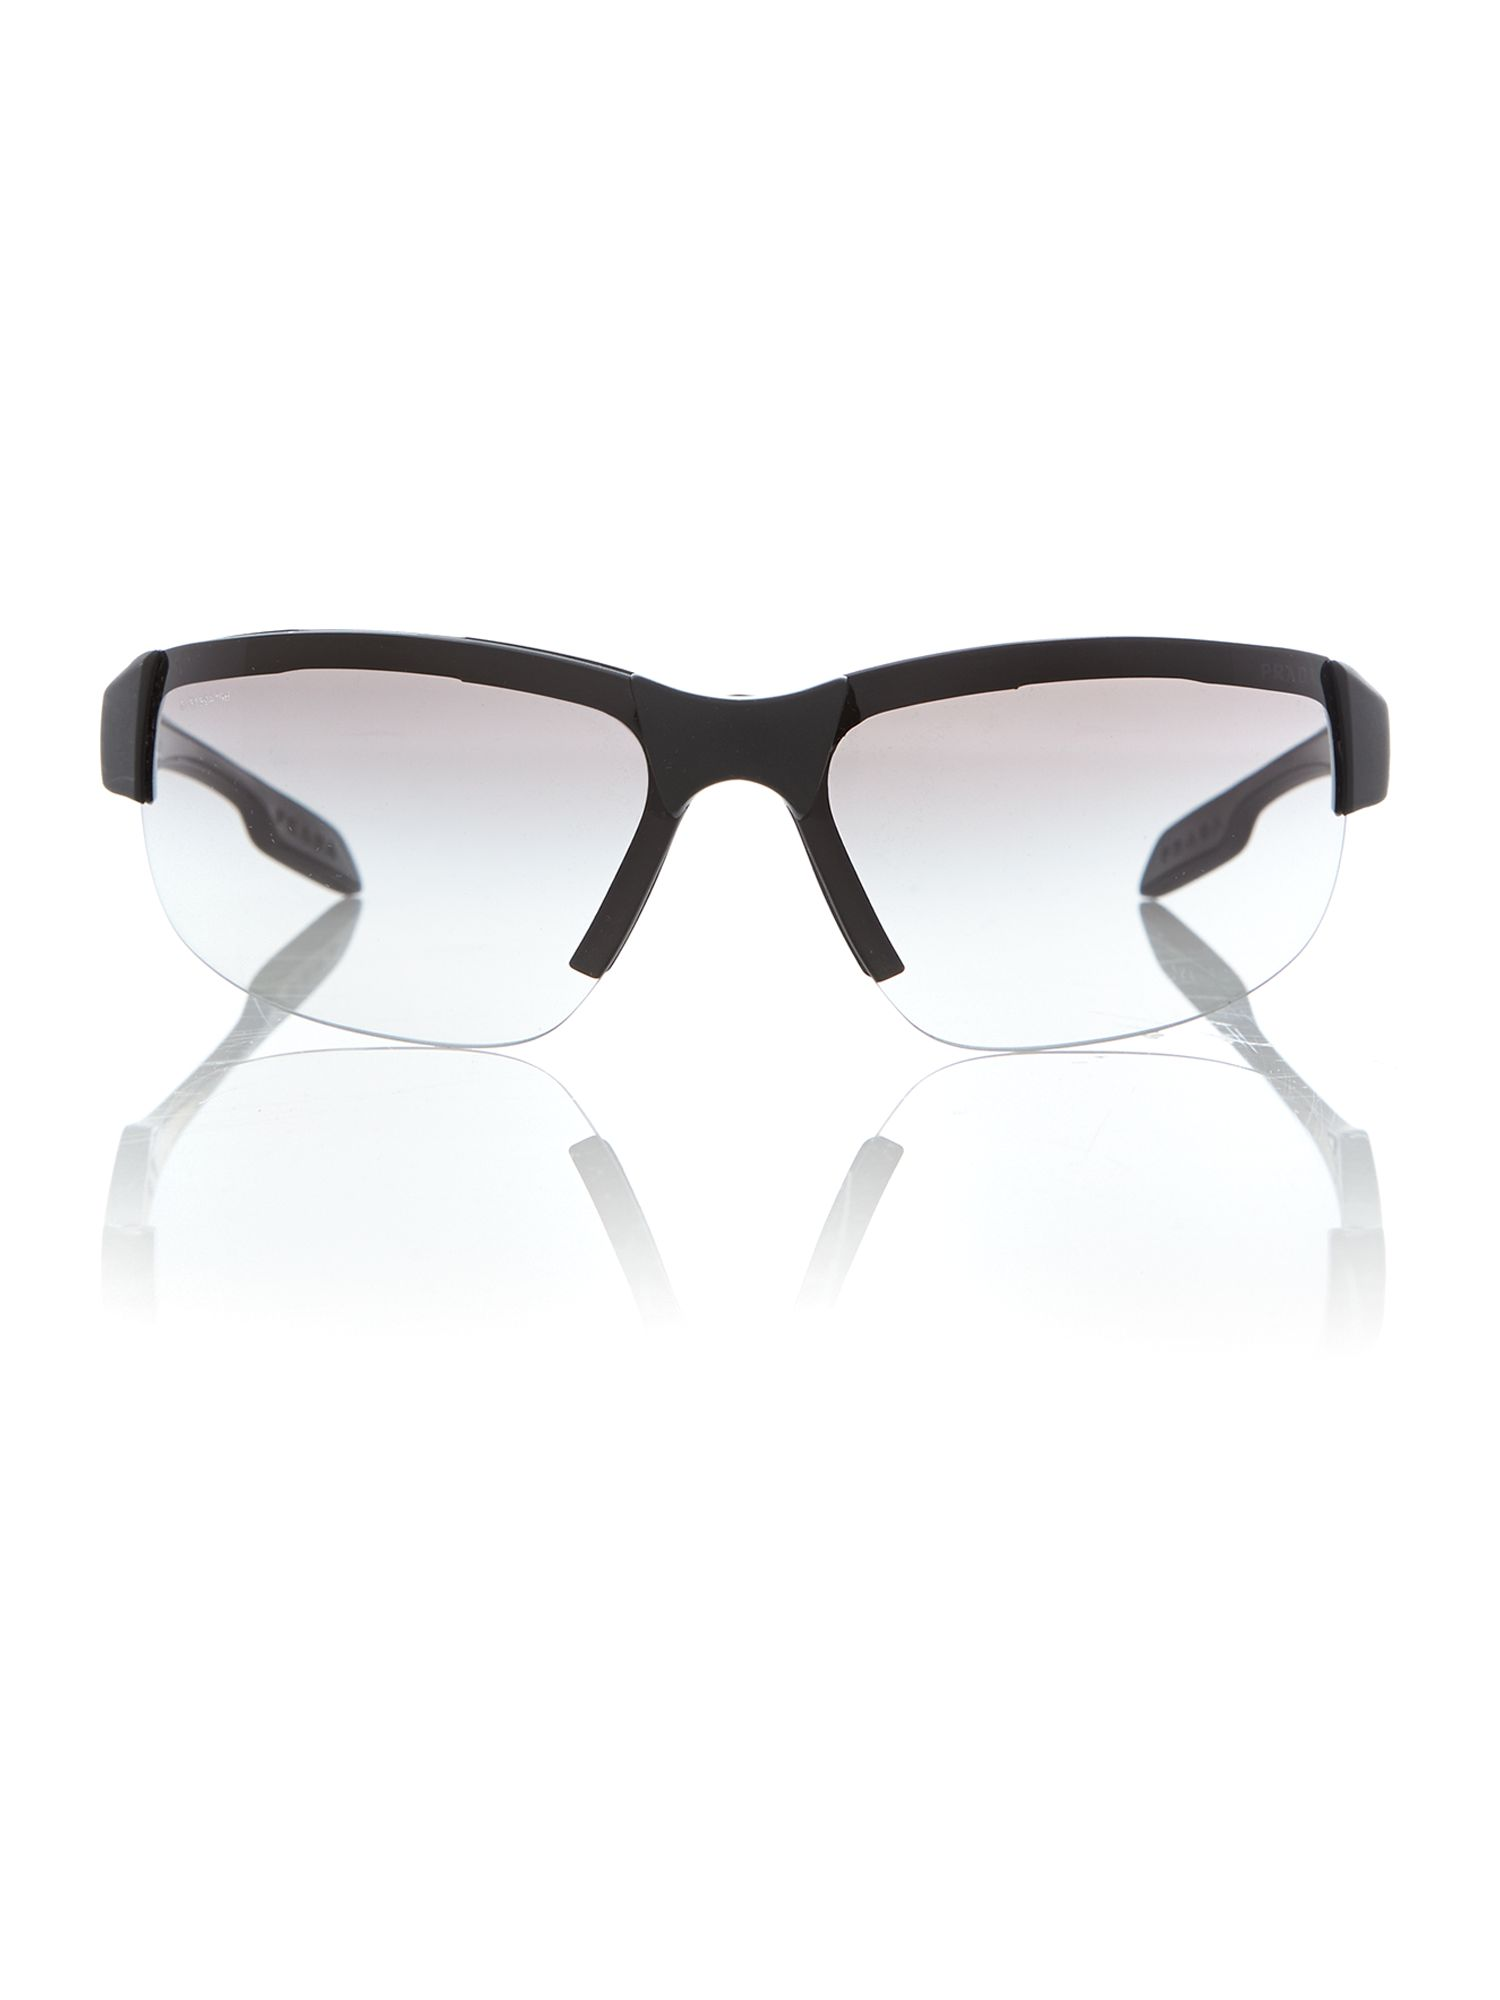 Men`s irregular sunglasses